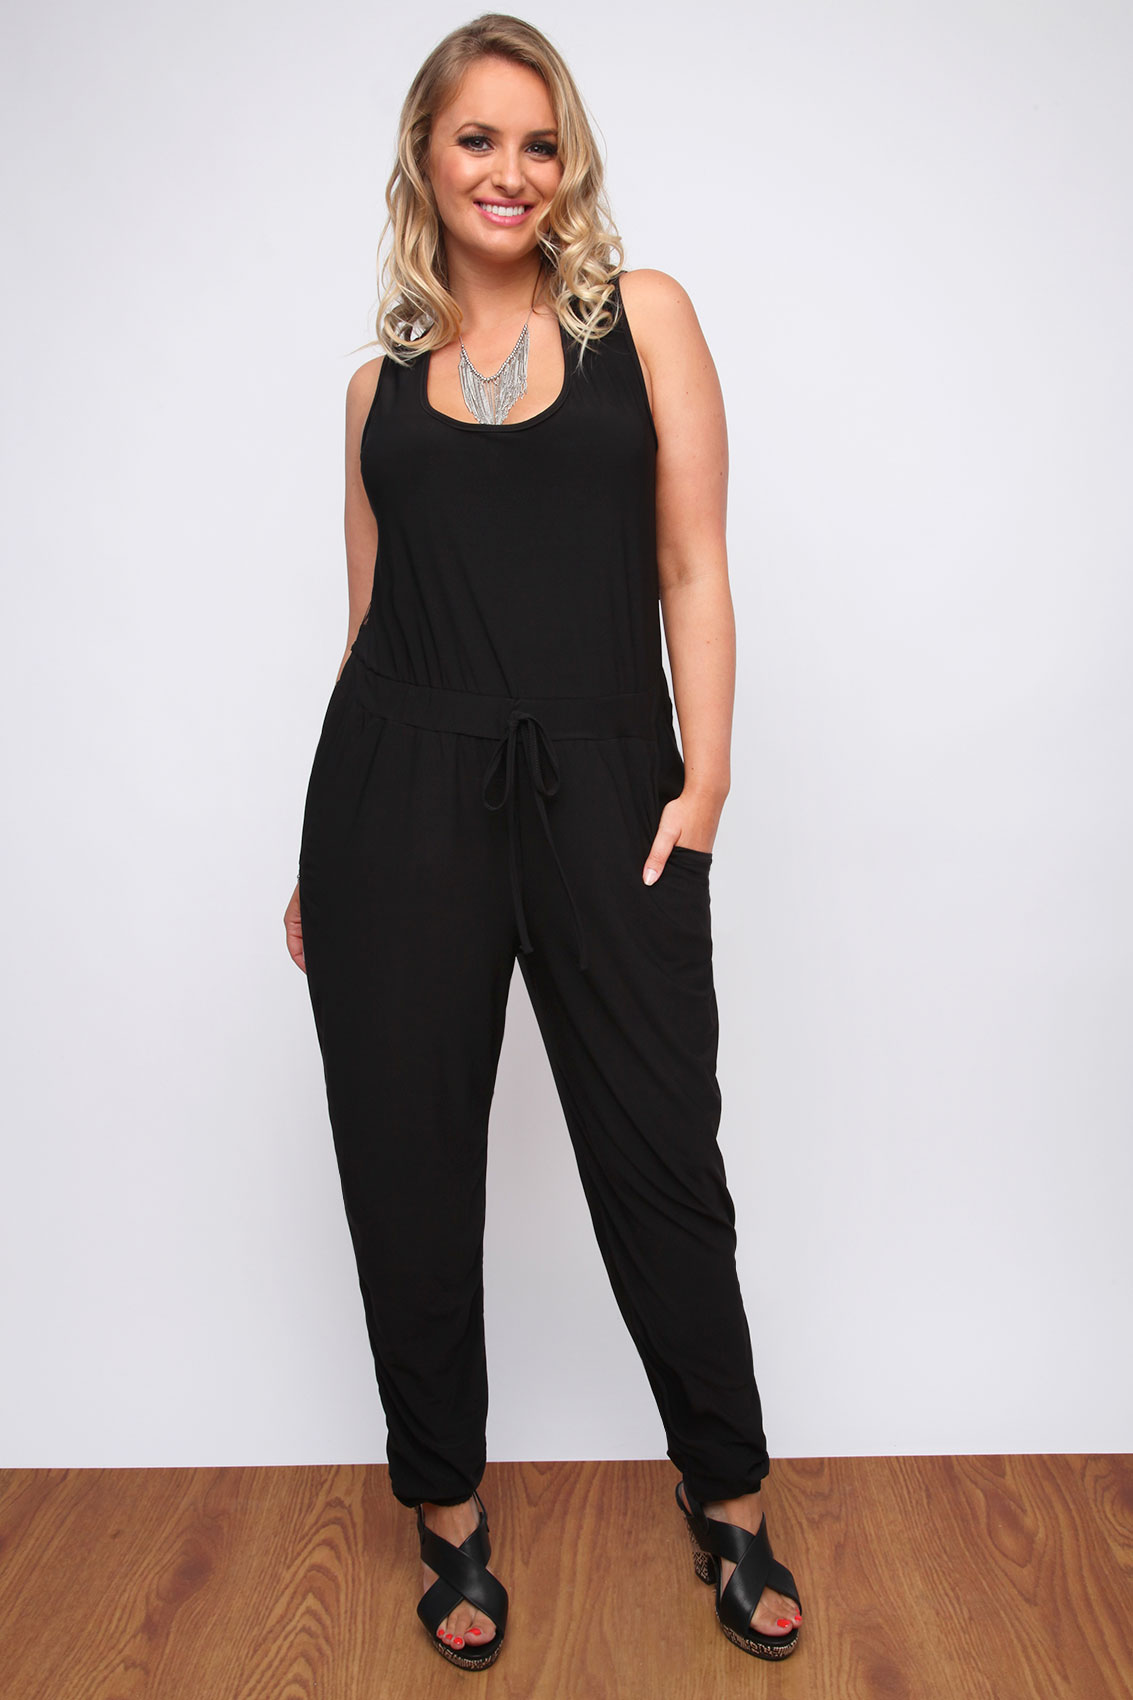 The mens jumpsuits are an excellent choice for casual wear because they offer coziness. The men's jumpsuits are a popular choice because they offer movability, flexibility and comfort. They are the perfect clothing choice for relaxing at home.